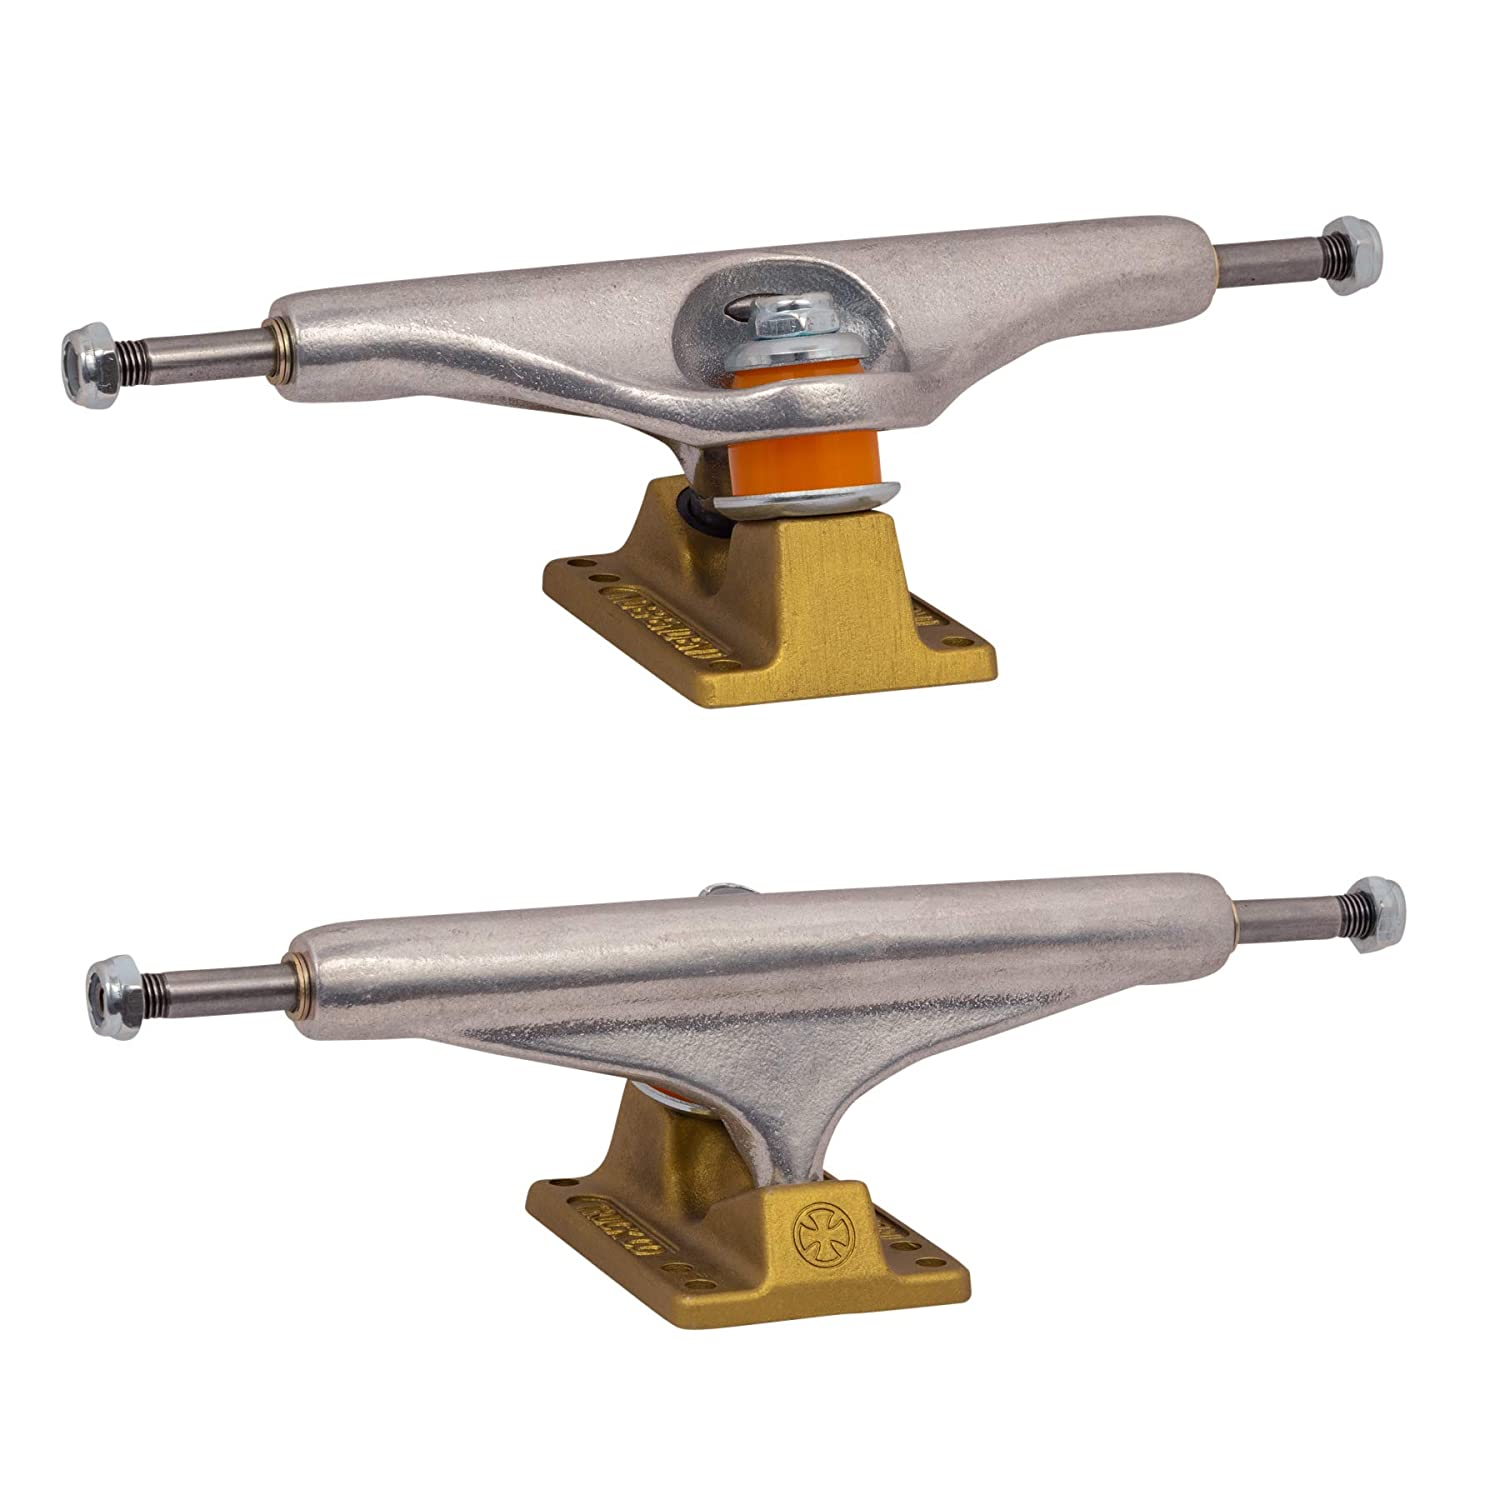 Independent Skateboard Trucks Stage 11 Hollow Silver//Gold 144 Indy 1 Hardware